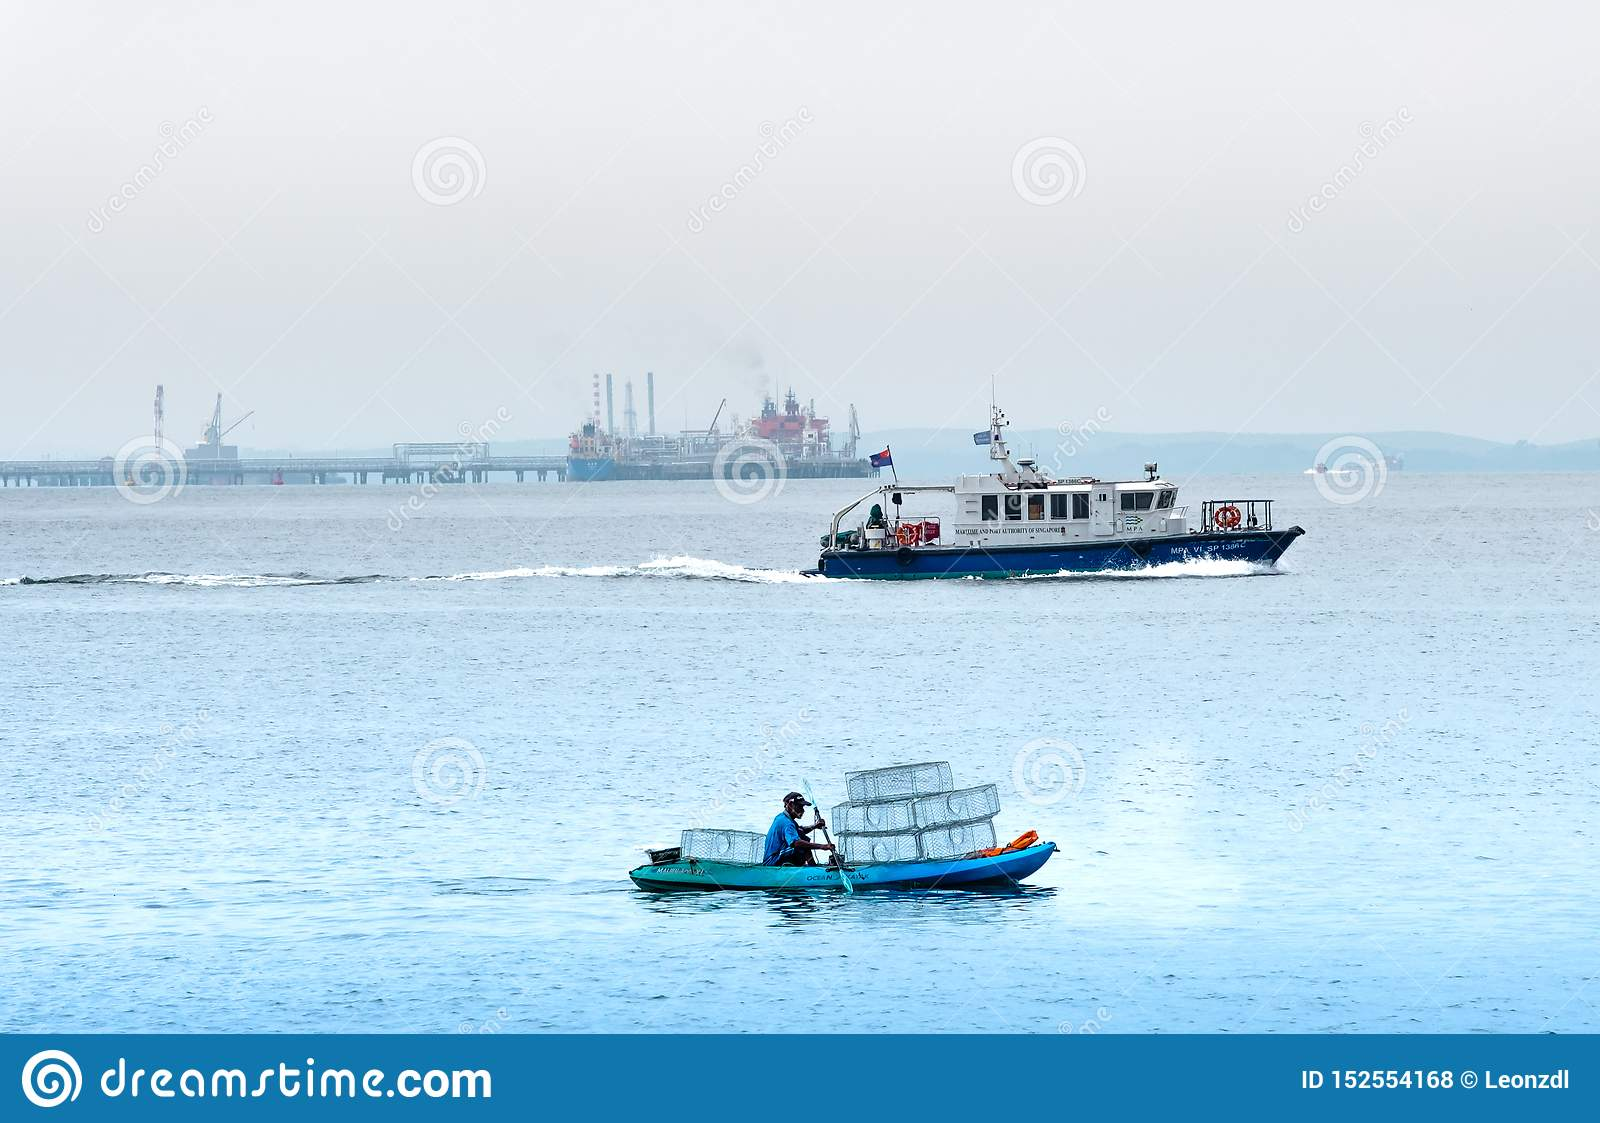 Singapore-29 JUN 2019:Fisherman is fishing in the sea by placing cages